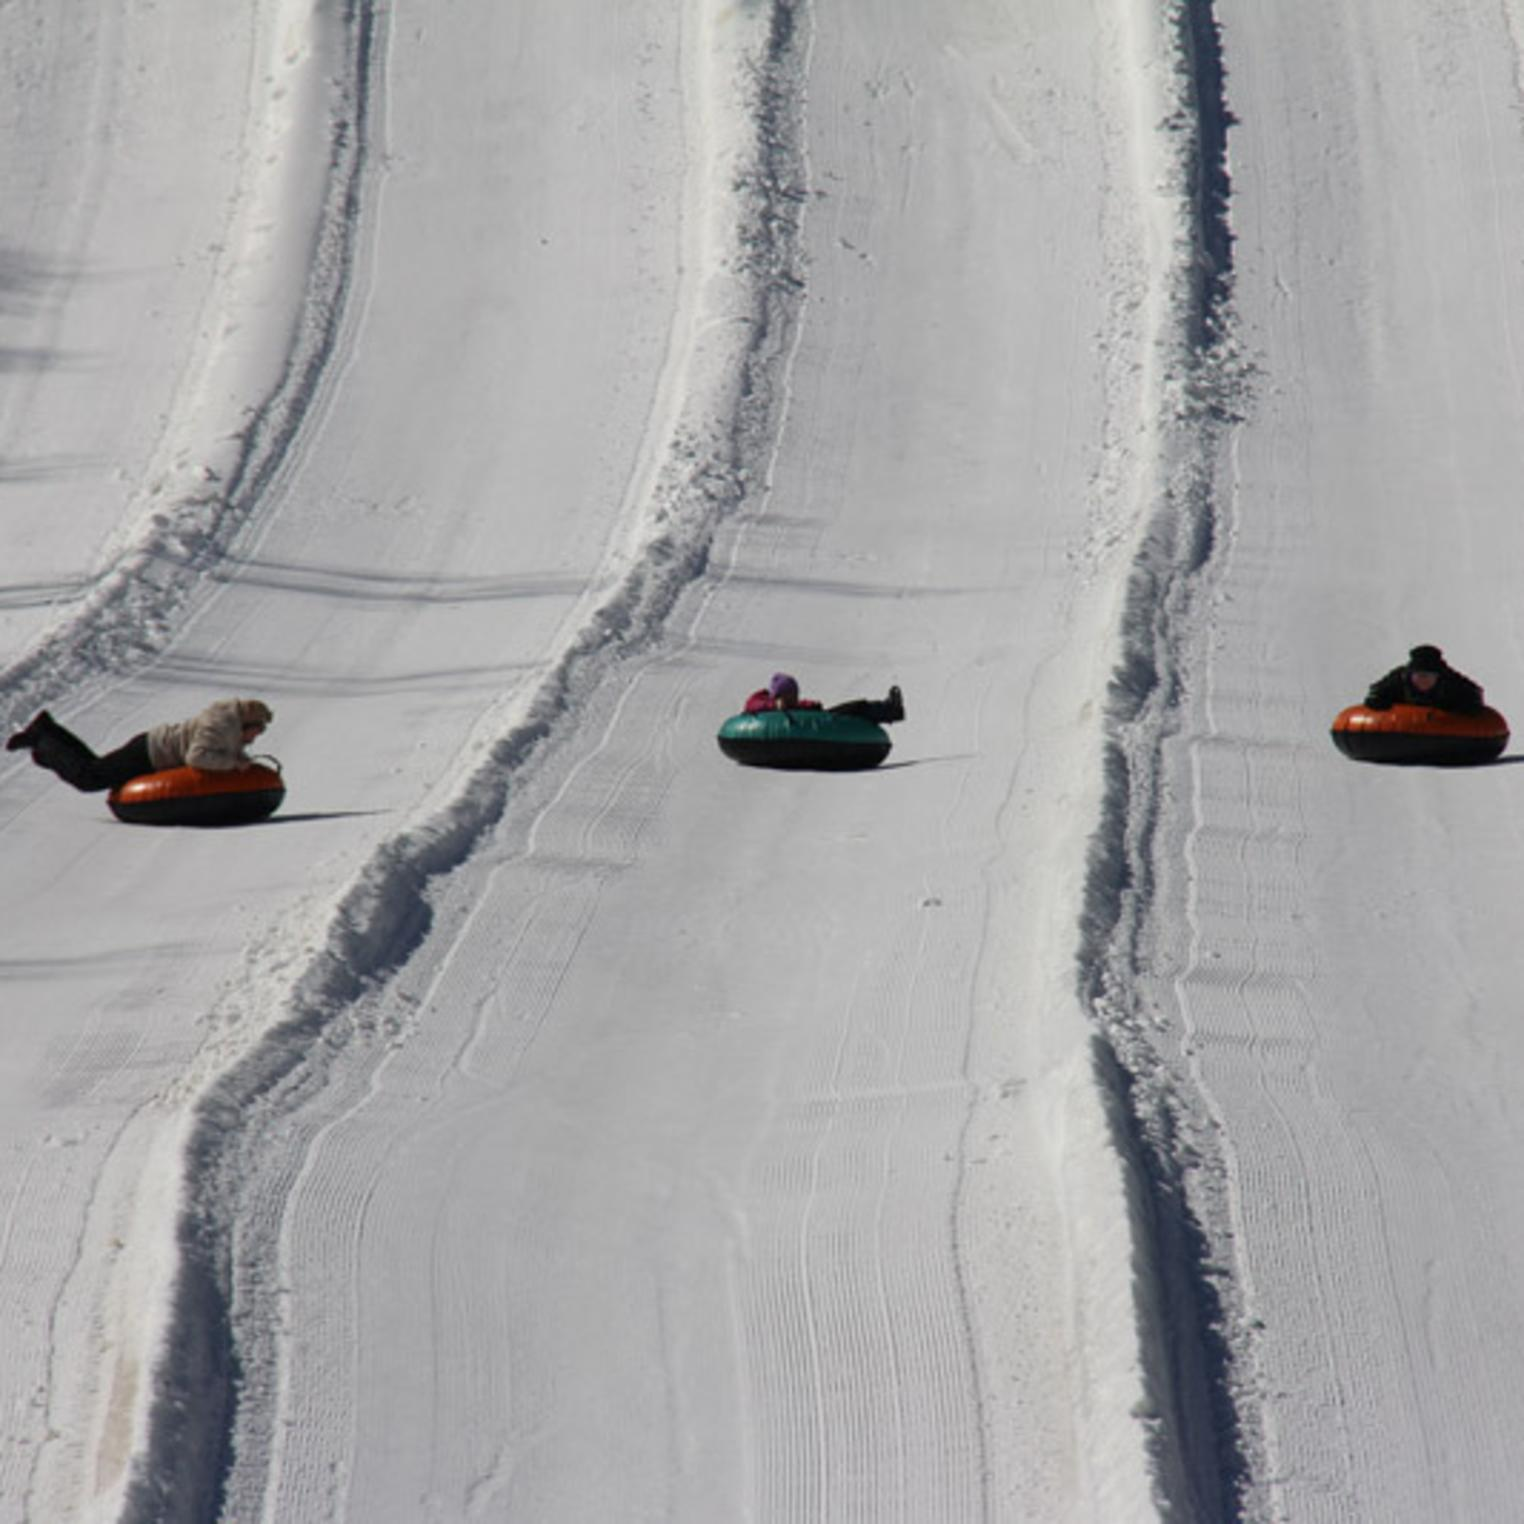 Snow Tubing at Roundtop Mountain Resort